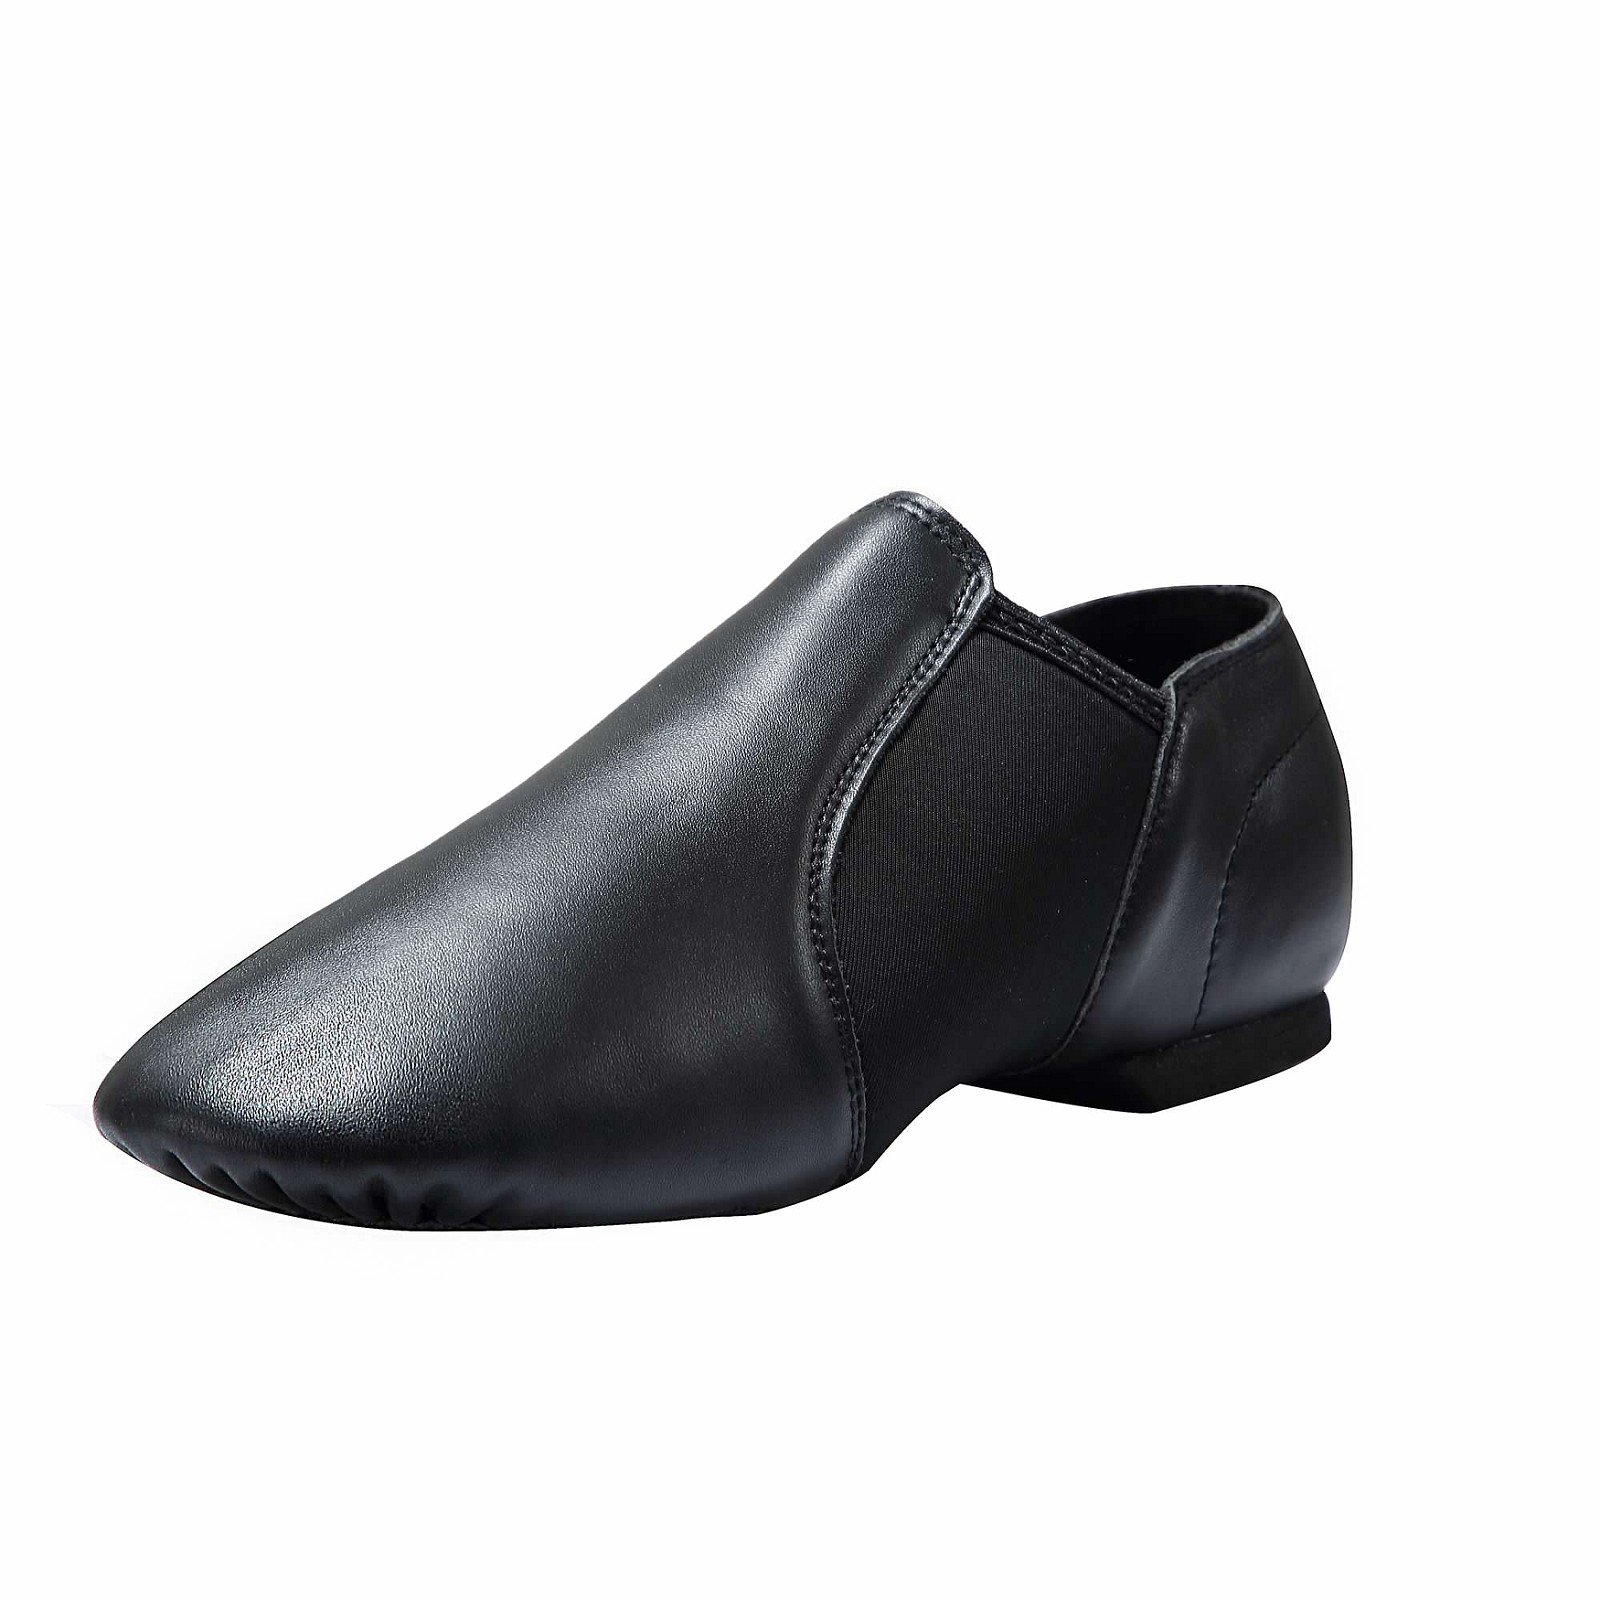 Dynadans Leather Upper Slip-on Jazz Shoe (Big Kid/Little Kid/Toddler) 13M Little Kid Black by Dynadans